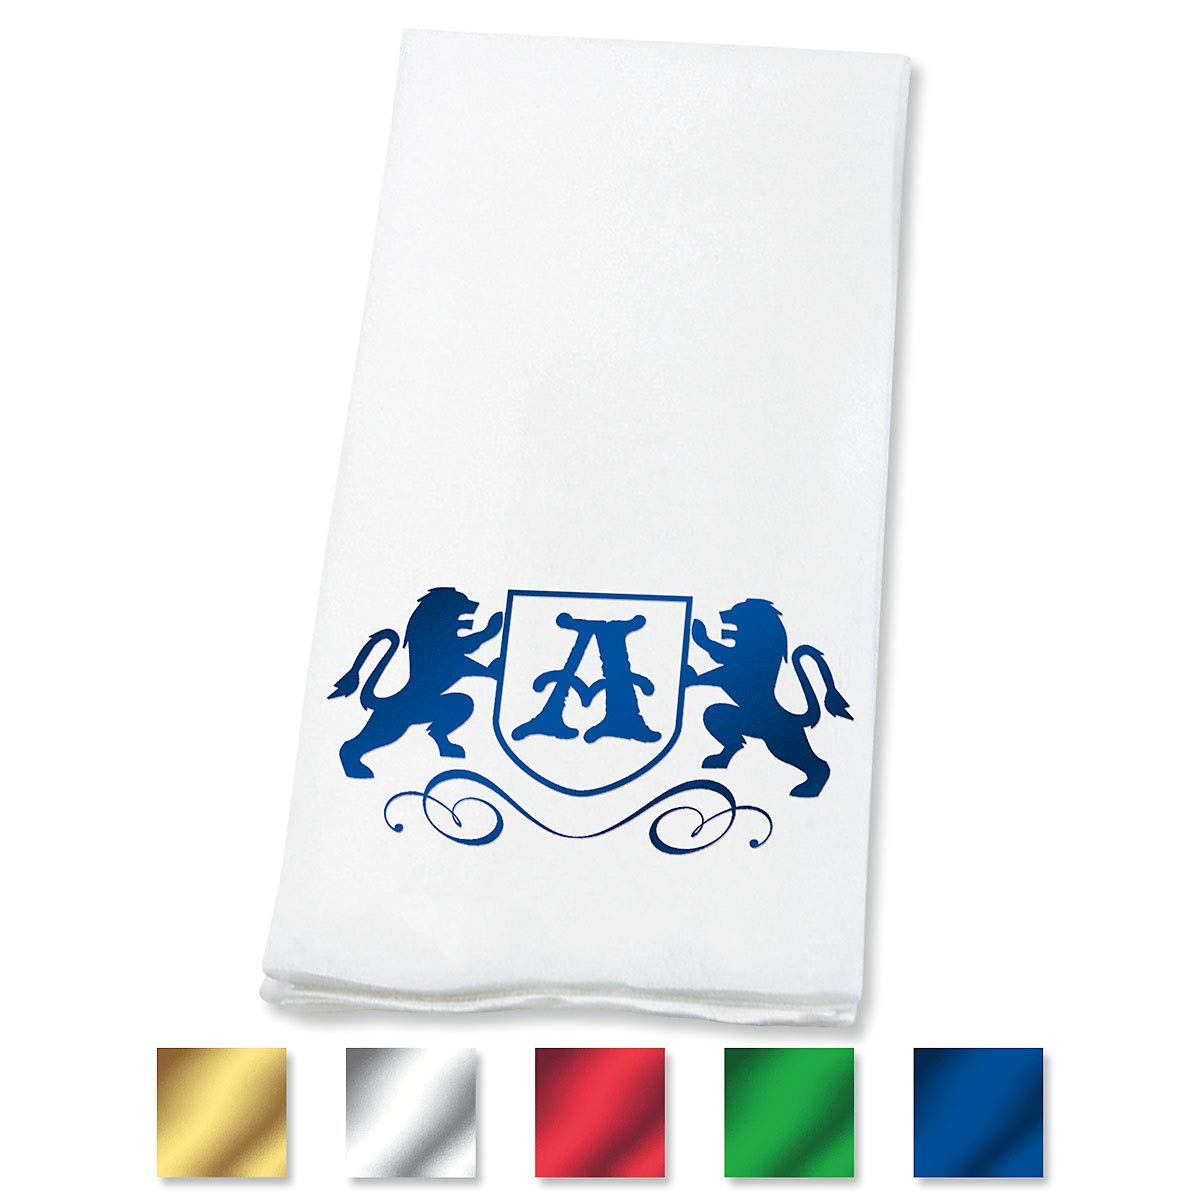 Lillian Vernon Lion Personalized Monogram Linen-Like Hand Towels (Set of 100)- 50% Cotton 50% Paper Blend, 13'' by 17'' Open and 4 1/2'' by 8 1/2'' Closed, Choose from 5 Colors, Weddings, Dinner Party